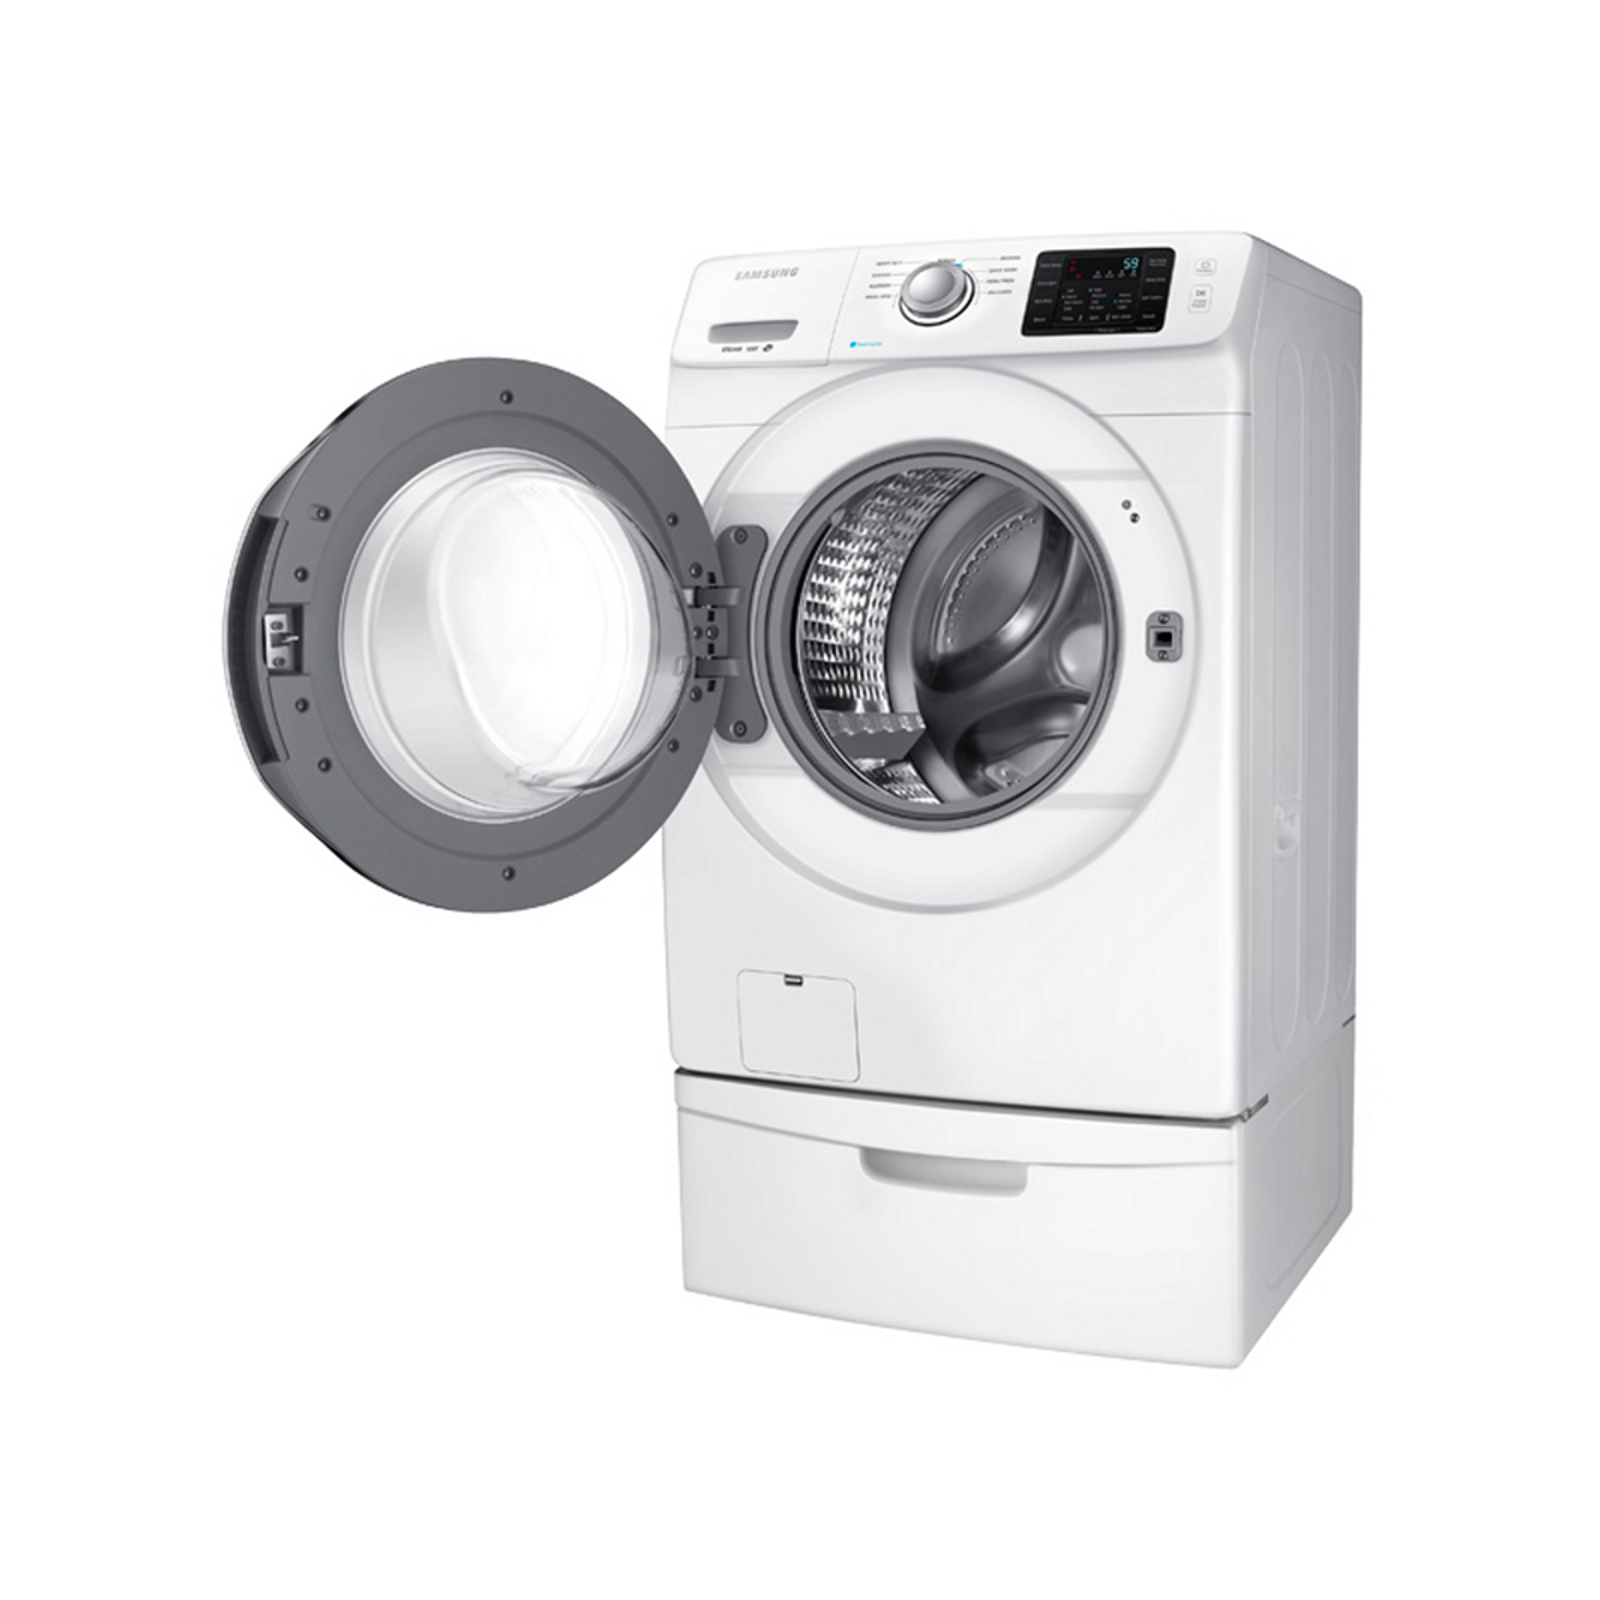 Samsung WF42H5200AW 4.2 cu. ft. Front-Load Washer w/ Steam Washing - White